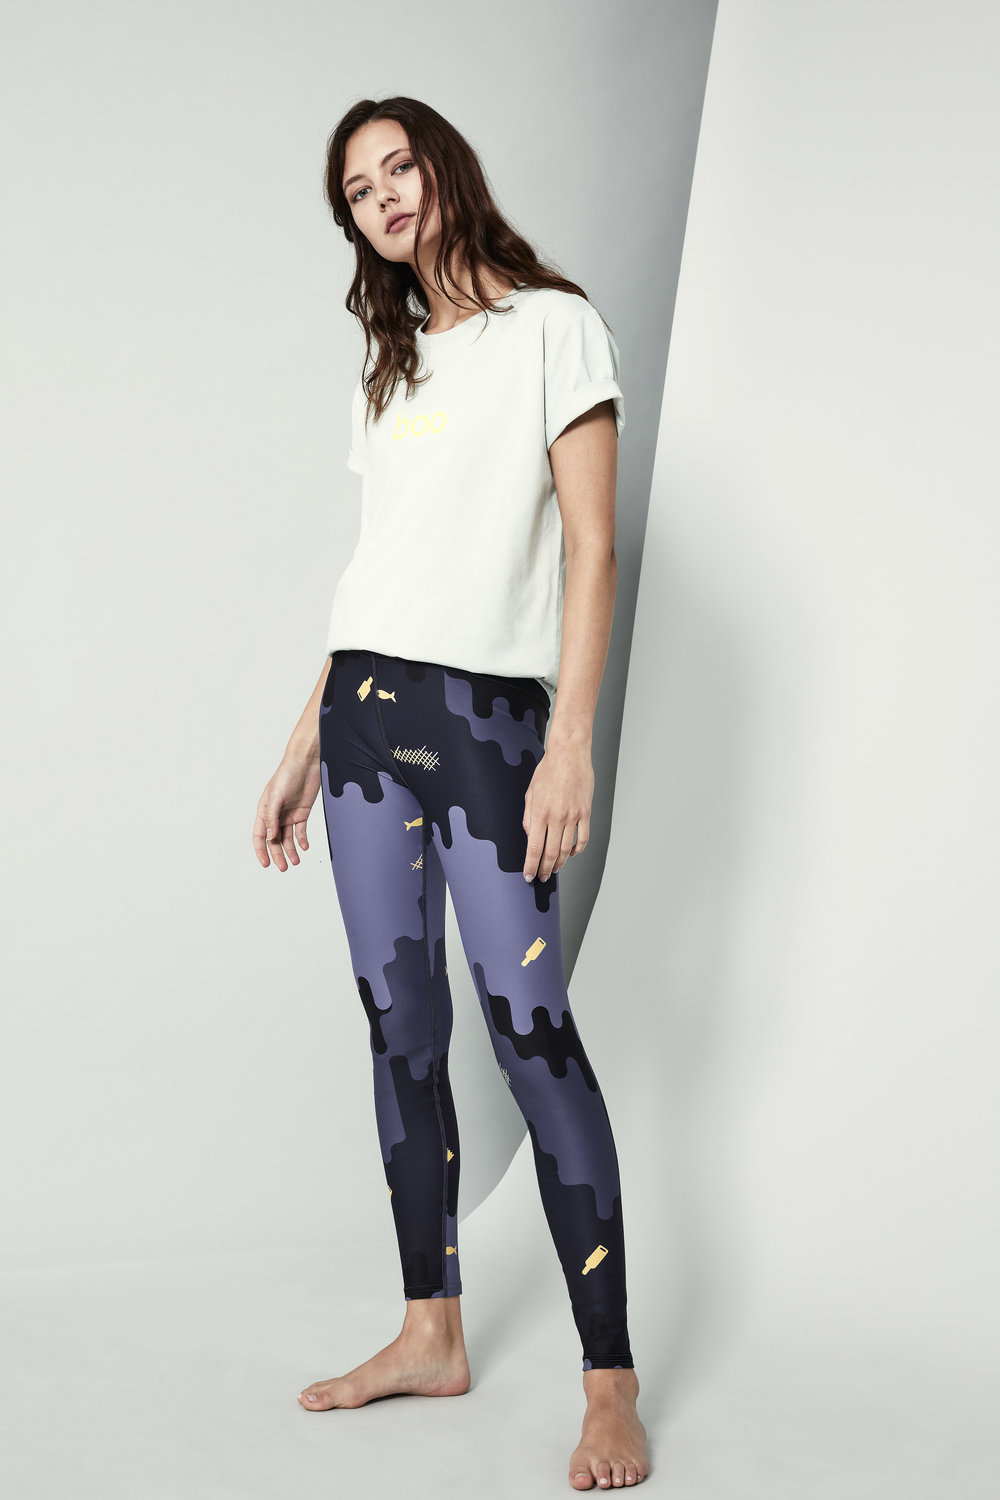 Leggings in save the Ocean print